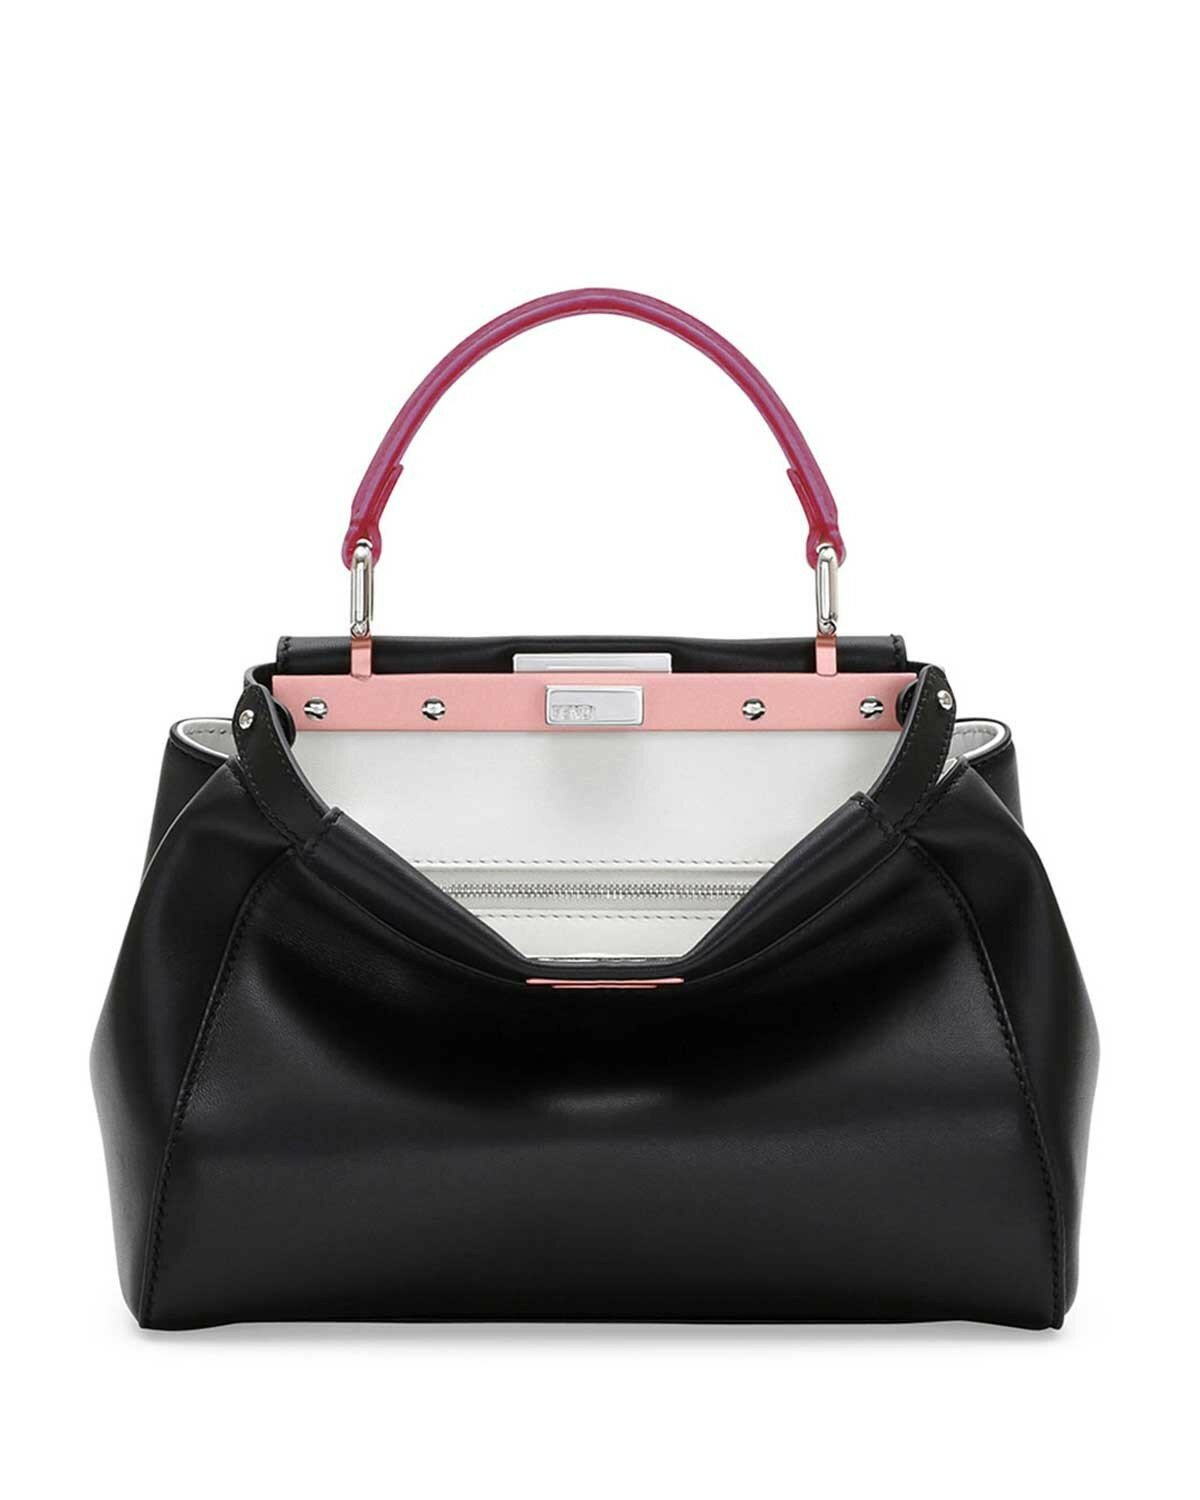 Fendi peekaboo mini tricolor satchel bag black/red/fuchsia,complete in specifications usa,competitive price usa